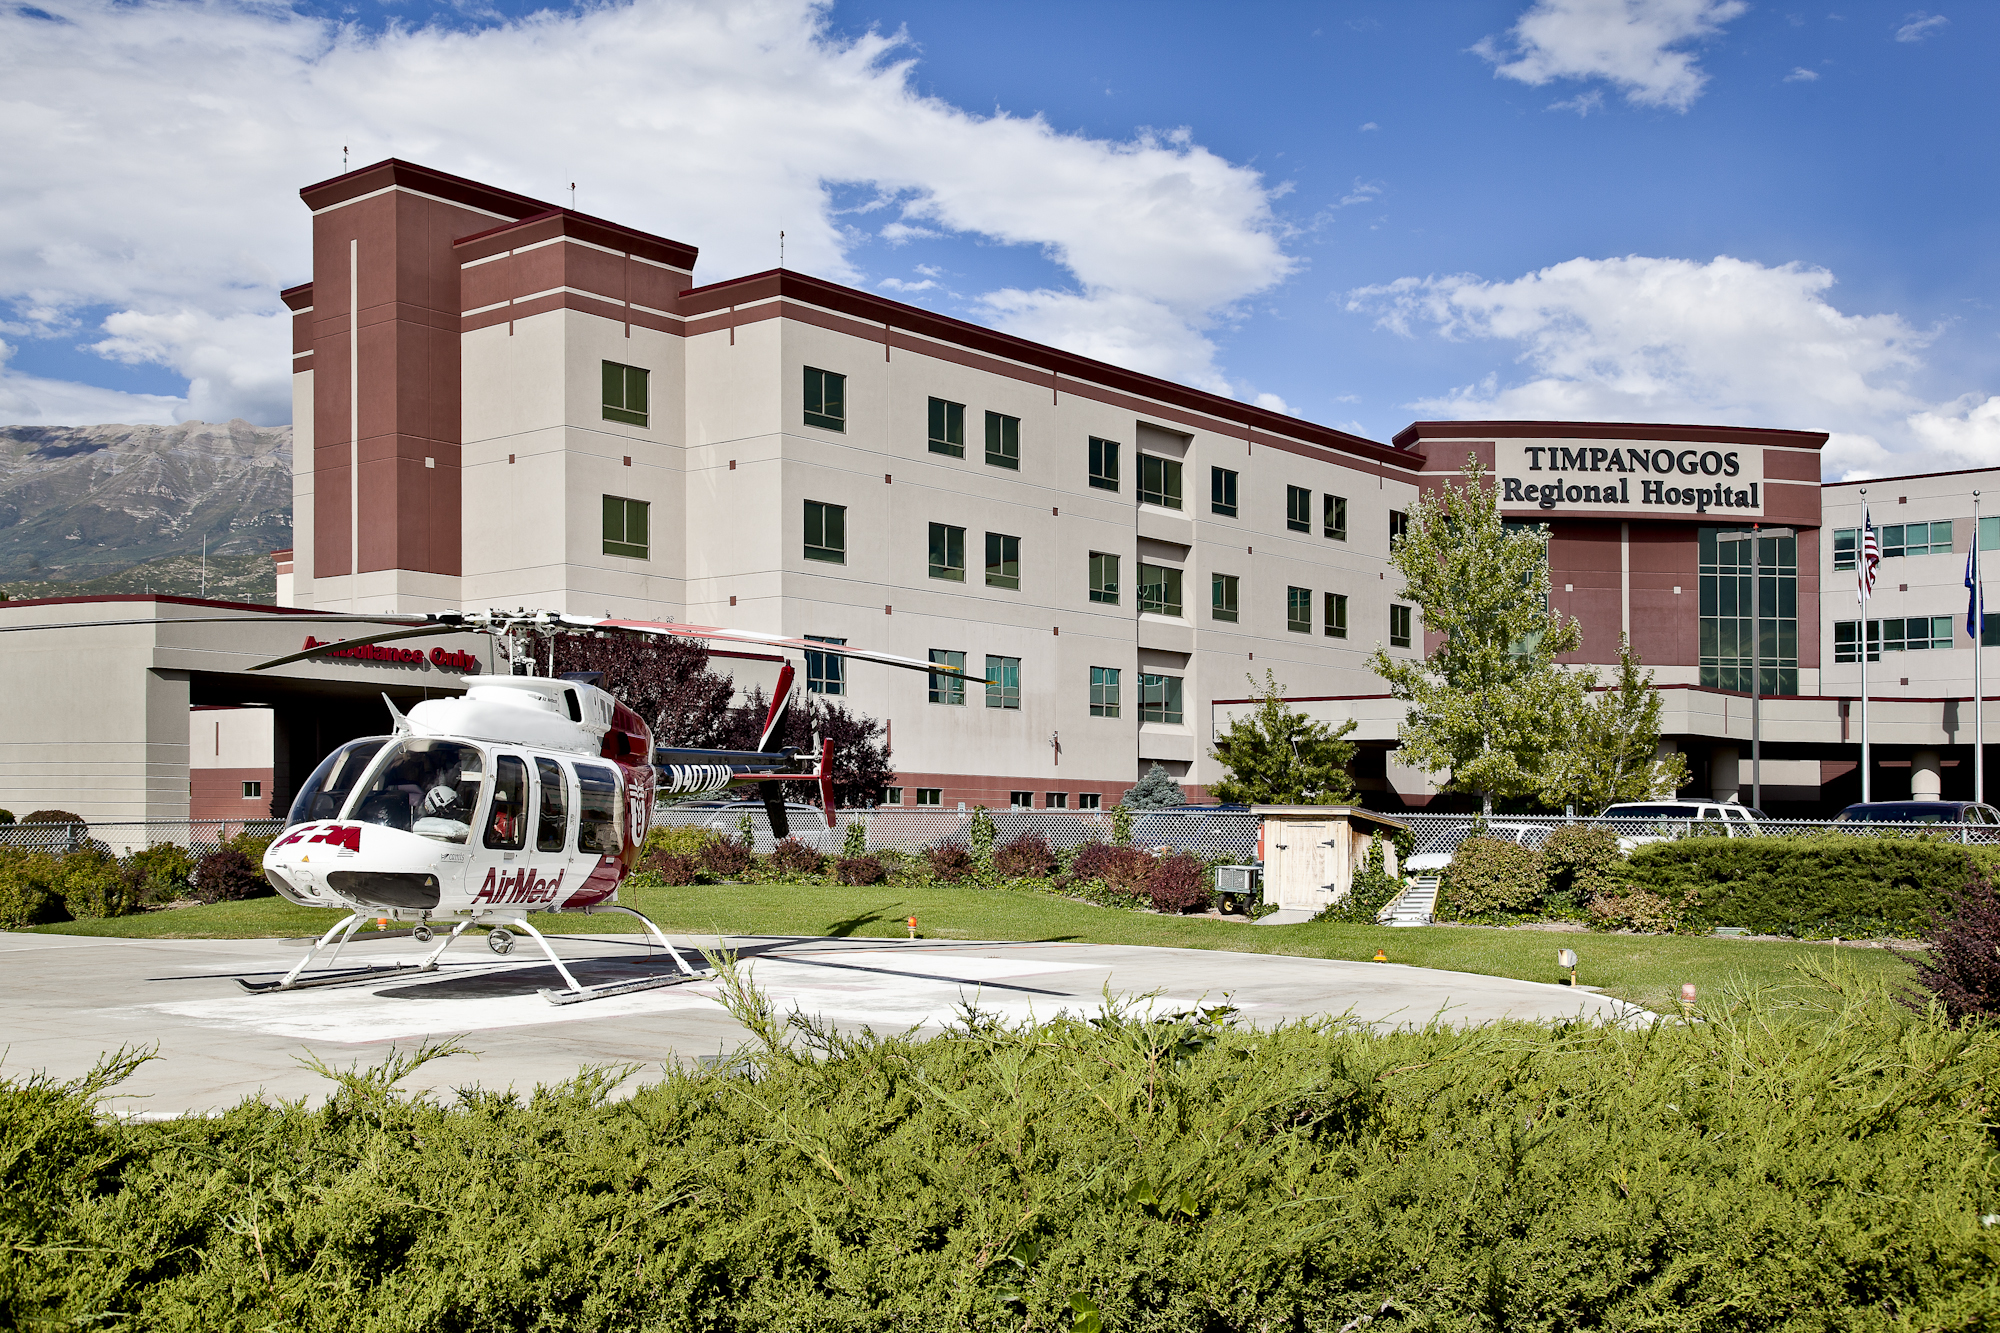 Timpanogos Regional Hospital photo